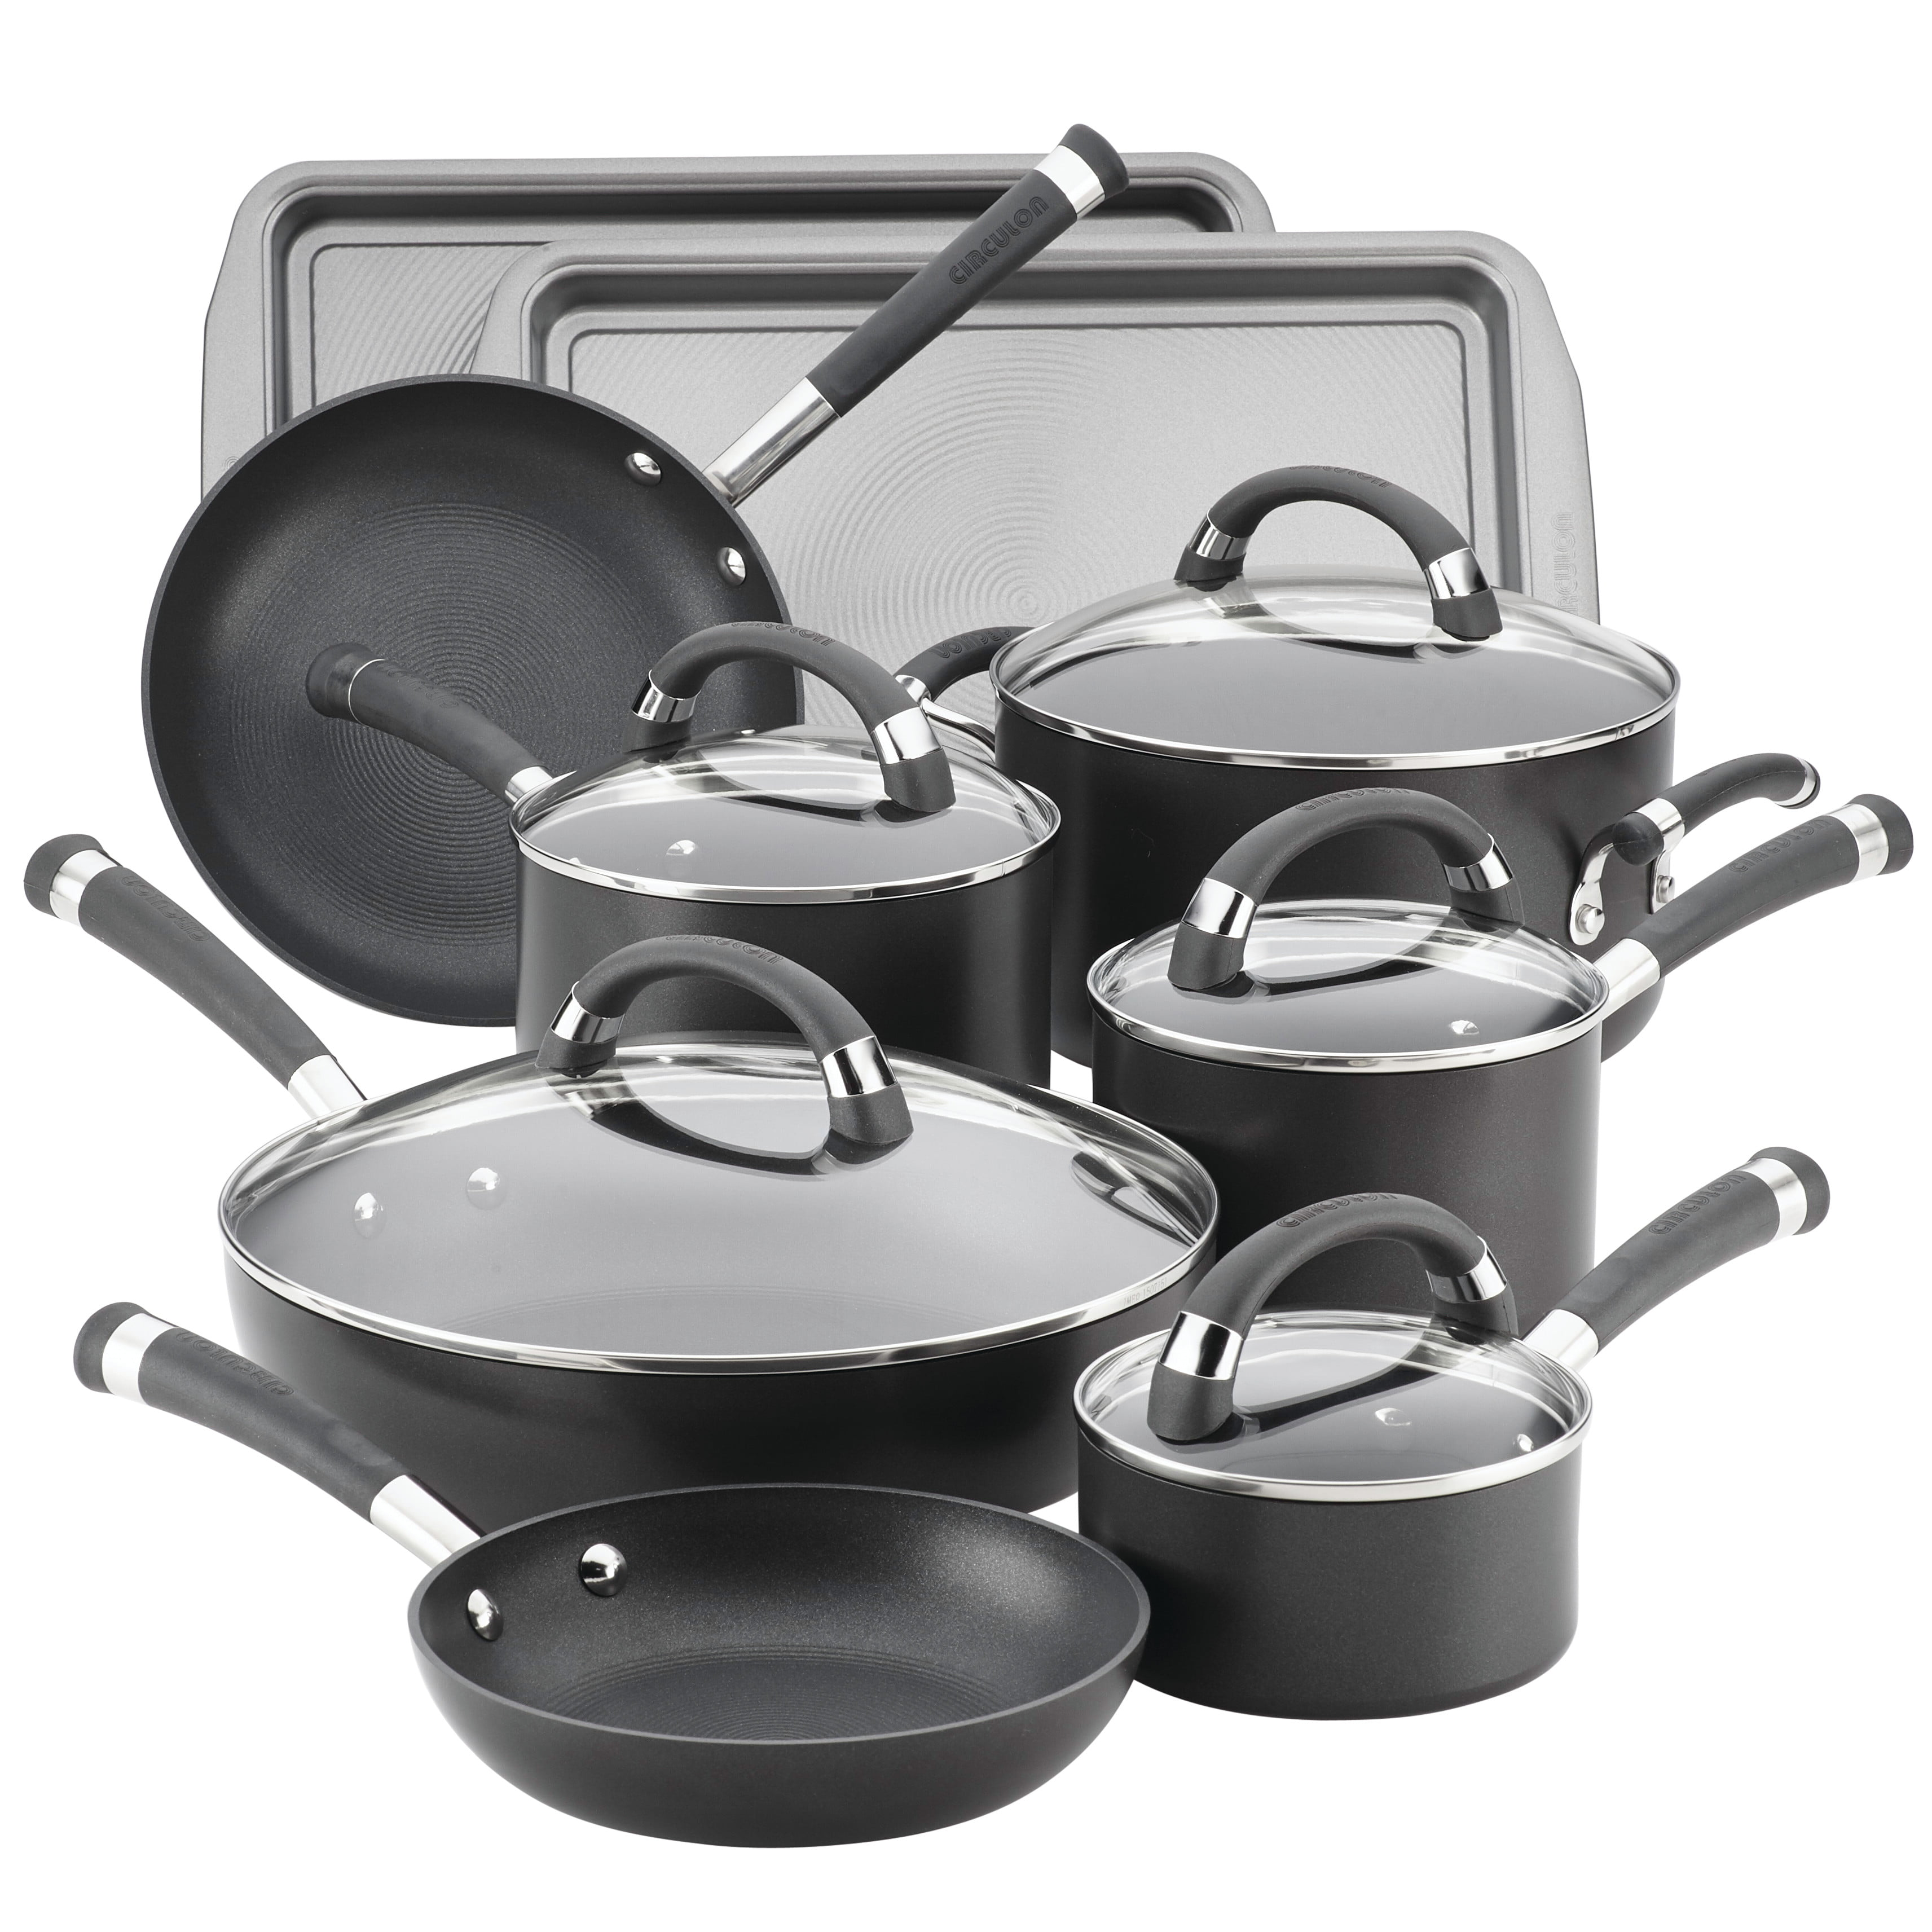 Circulon Espree Hard-Anodized Nonstick 14-Piece Cookware Set, Pewter by Meyer Corporation